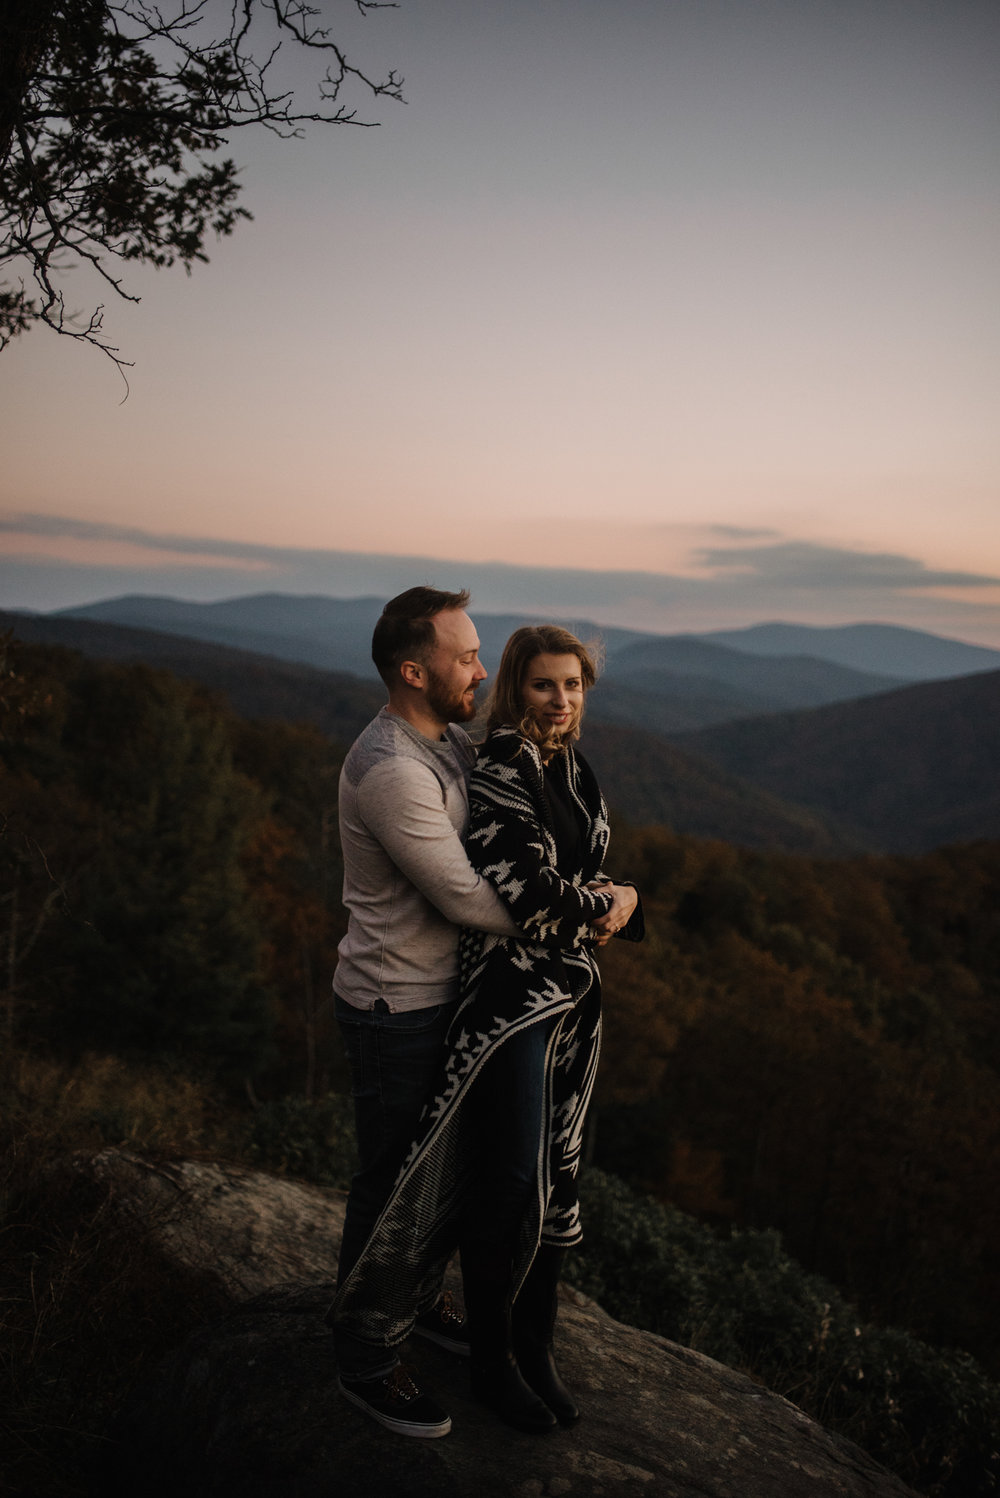 Macy and Mark - Shenandoah National Park - Fall Autumn Sunrise Couple Adventure Session - White Sails Creative - Mini Session_3.JPG